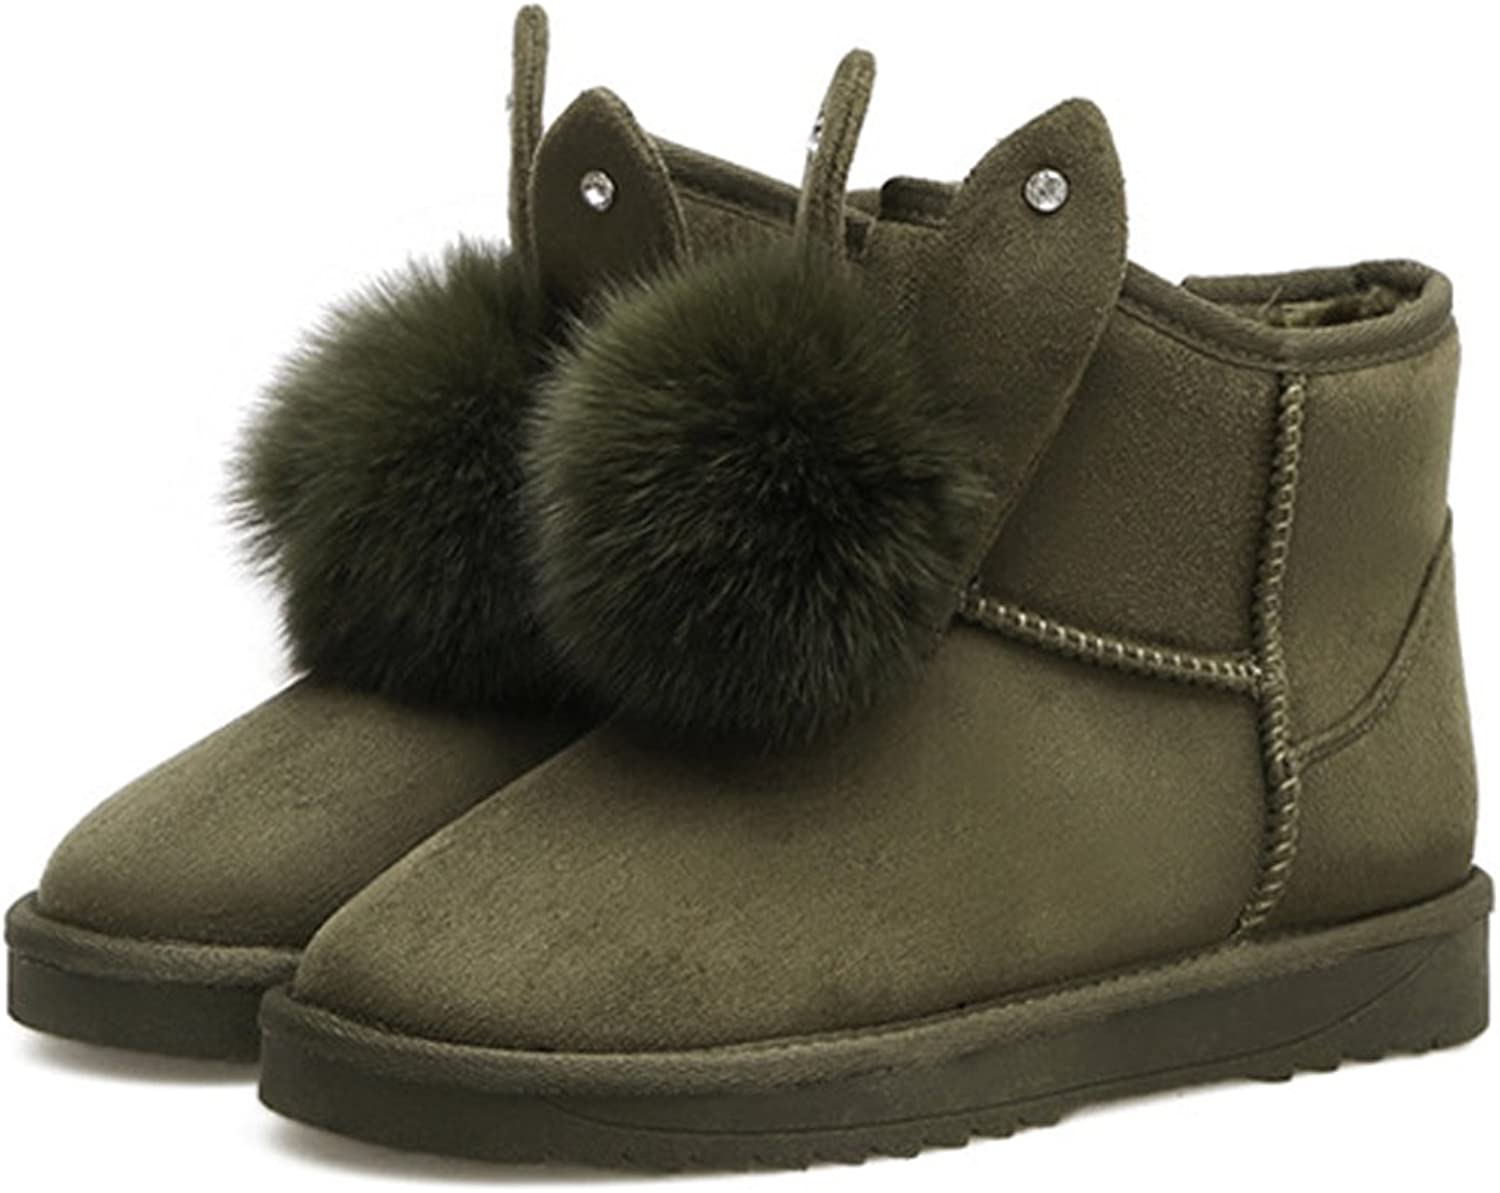 BERTERI Women's Cute Winter Christmas Snow Boot Rabbit Ears and Little Ball Decoration (Brown, Army Green, Grey, Black)